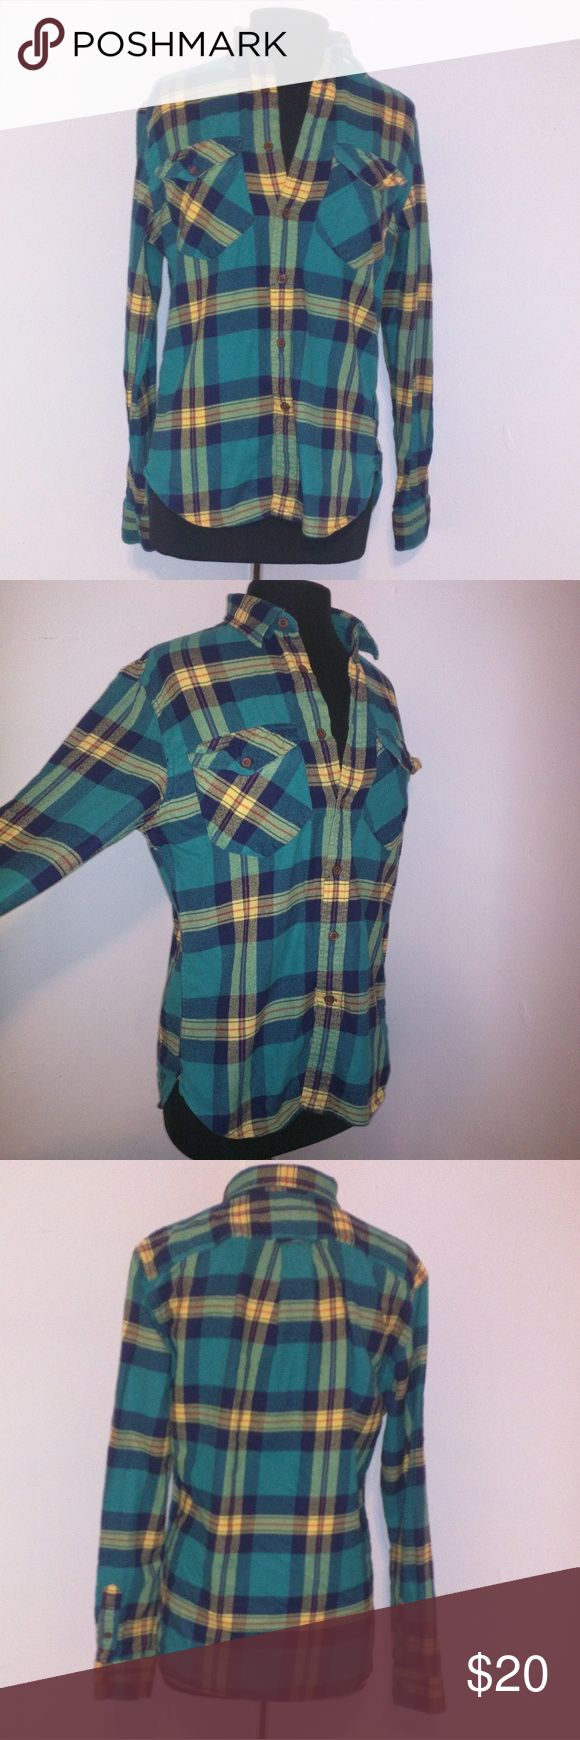 Flannel Shirt Green flannel shirt. Size: s runs big like most flannel shirts. Thick fabric, comfortable, perfect for fall and winter. Can be paired with jeans and a bootie. Lightly worn and in great condition. Land's End 'Canvas' collection. Always accepting offers! Lands' End Tops Button Down Shirts